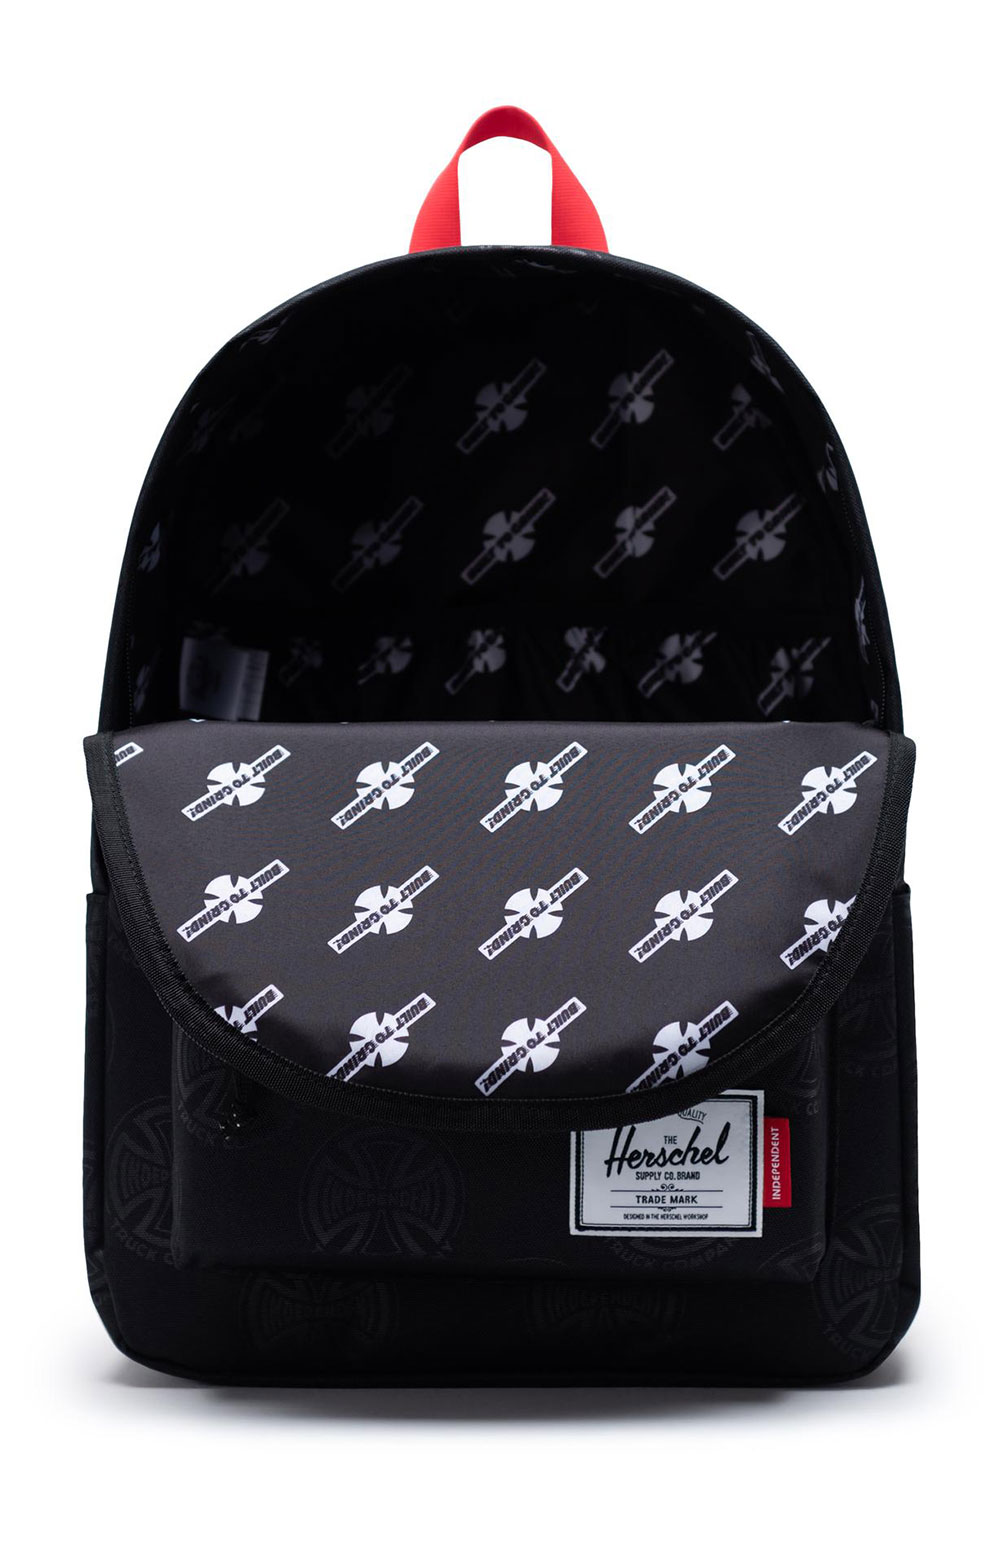 Classic XL Backpack - Independent Multi Cross Black 2